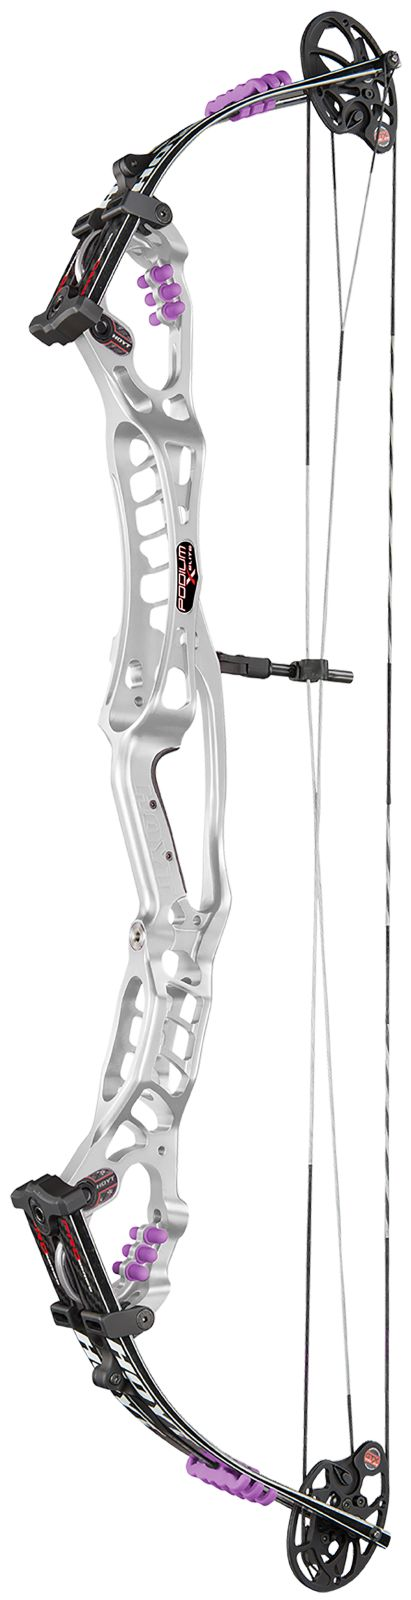 Hoyt Podium X Elite | Hoyt.com. This is the bow I will be getting!!!!!!!!